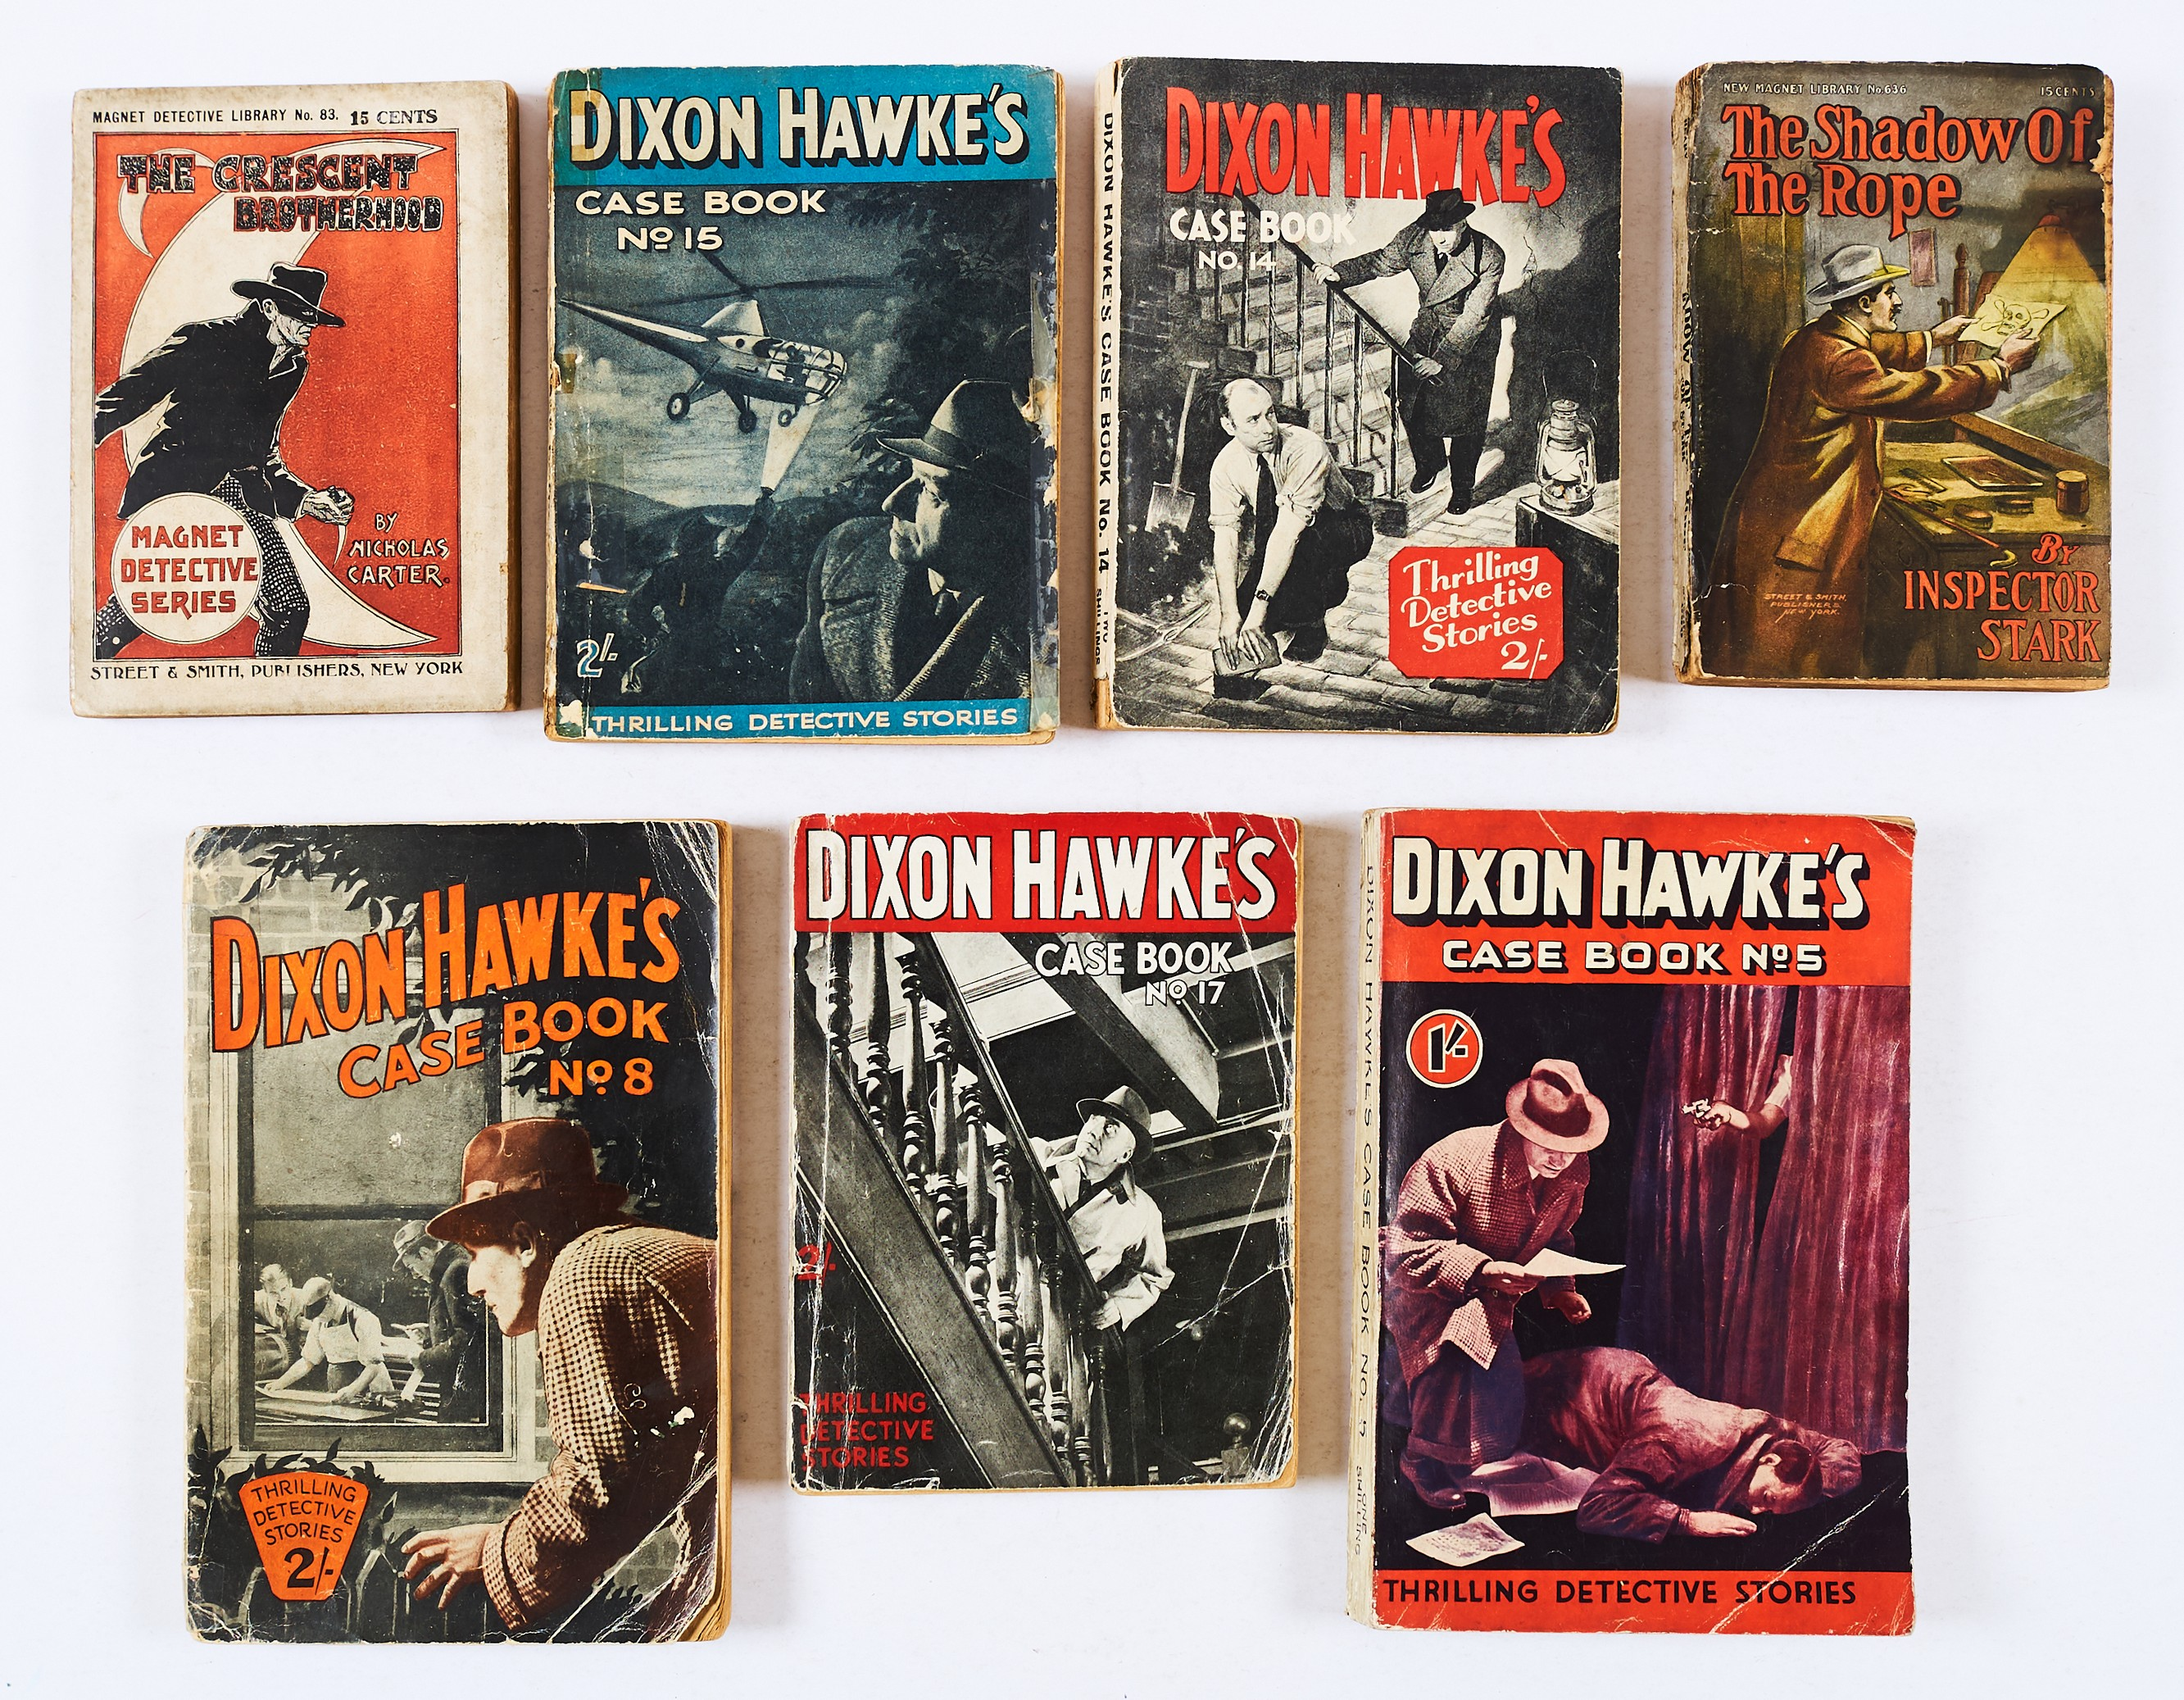 Lot 41 - Dixon Hawke's Case Book (1940s-50s D.C. Thomson) 5, 8, 14, 15, 17. With Magnet Detective Library (